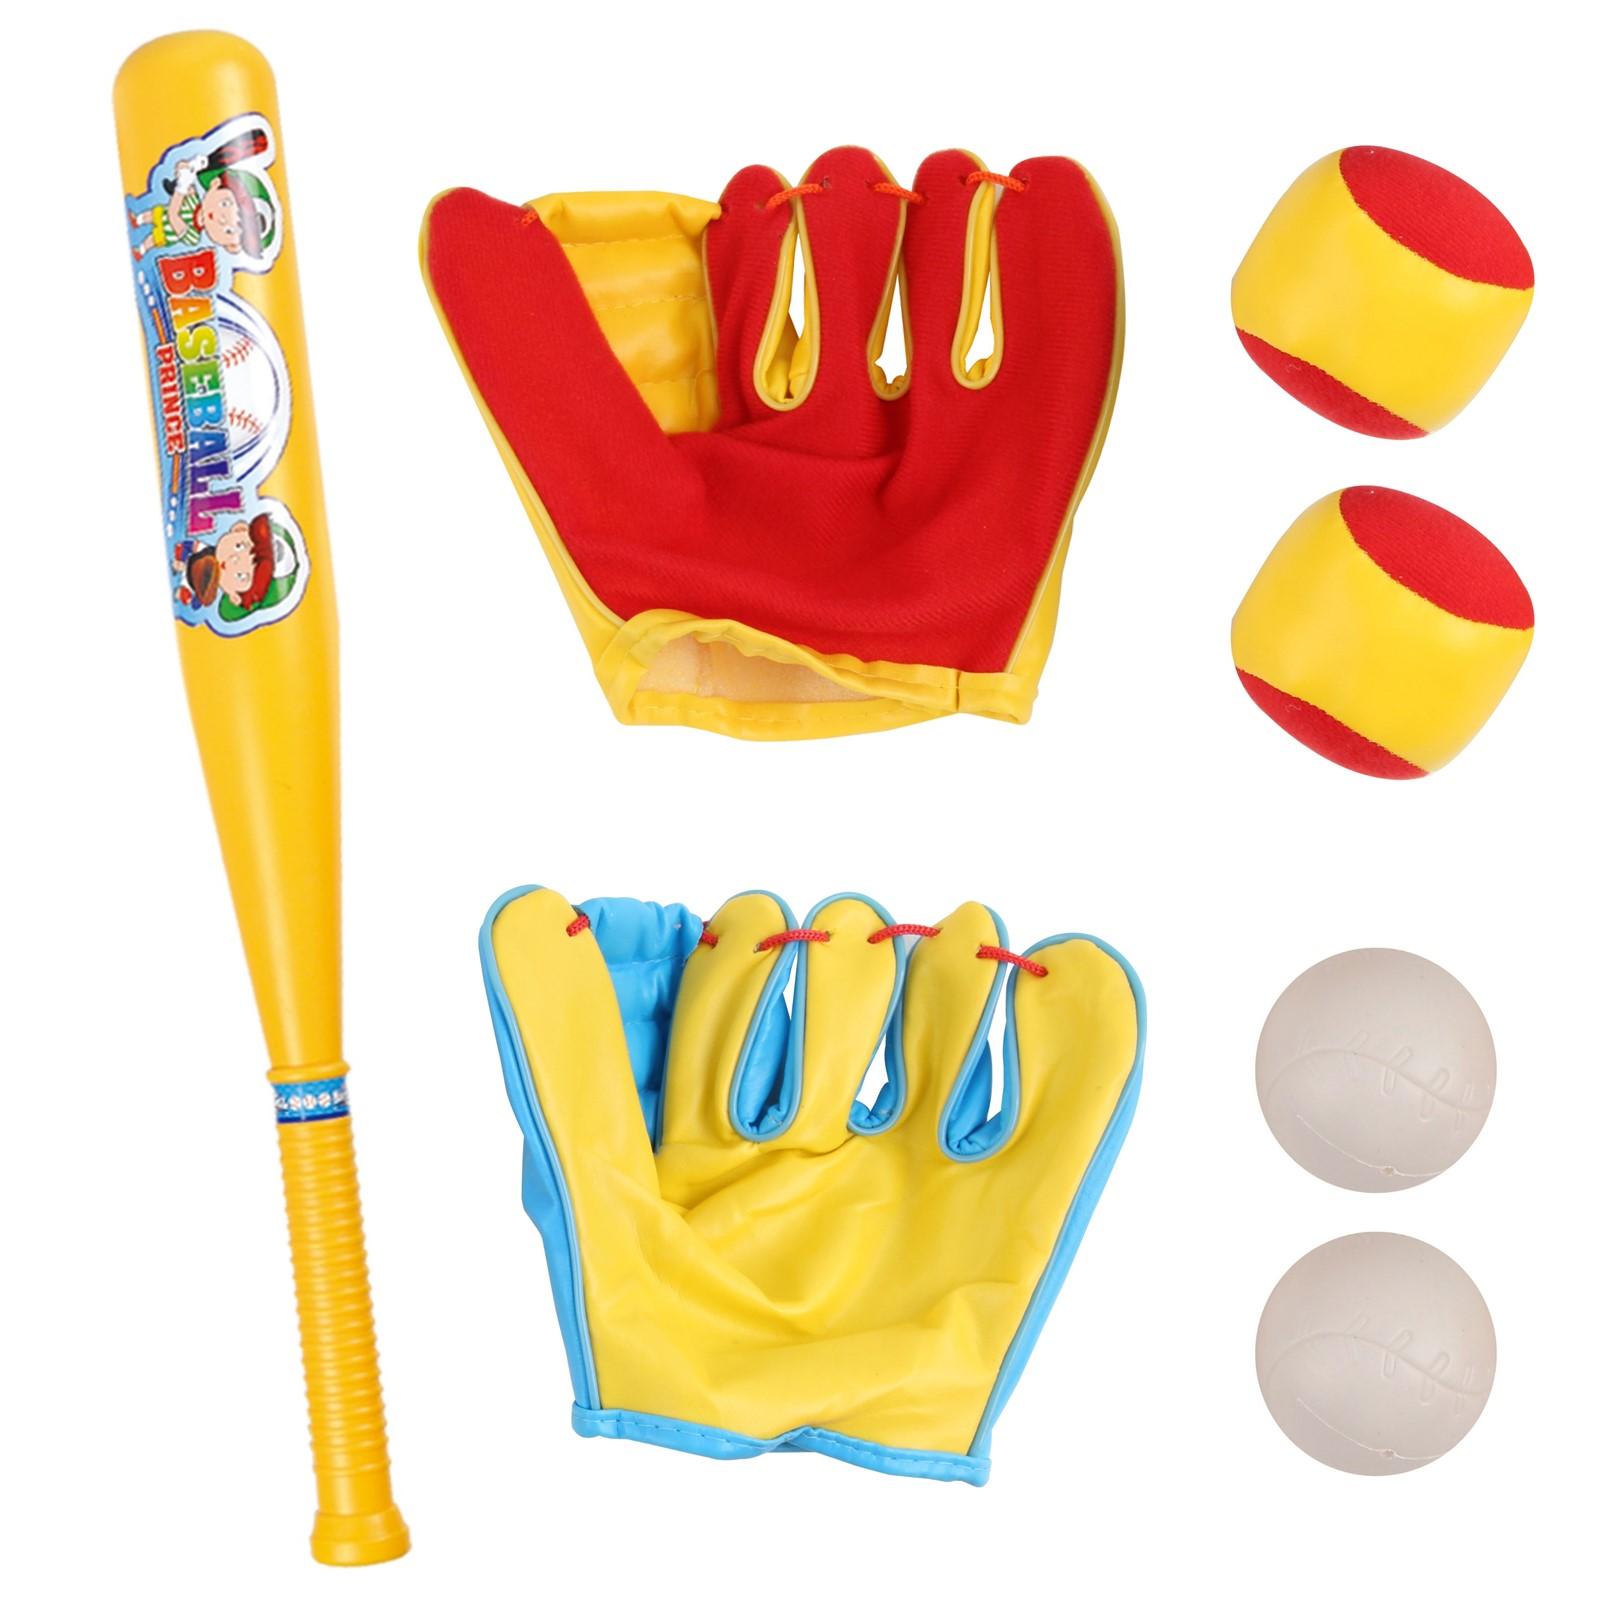 Baseball Set For Toddlers And Kids Practice Game Includes 1 Bat 2 Mitts 4 Balls Perfect Gift For Children Boys Girls To Improve Batting Skills Sports Toys Tee Game T-Ball